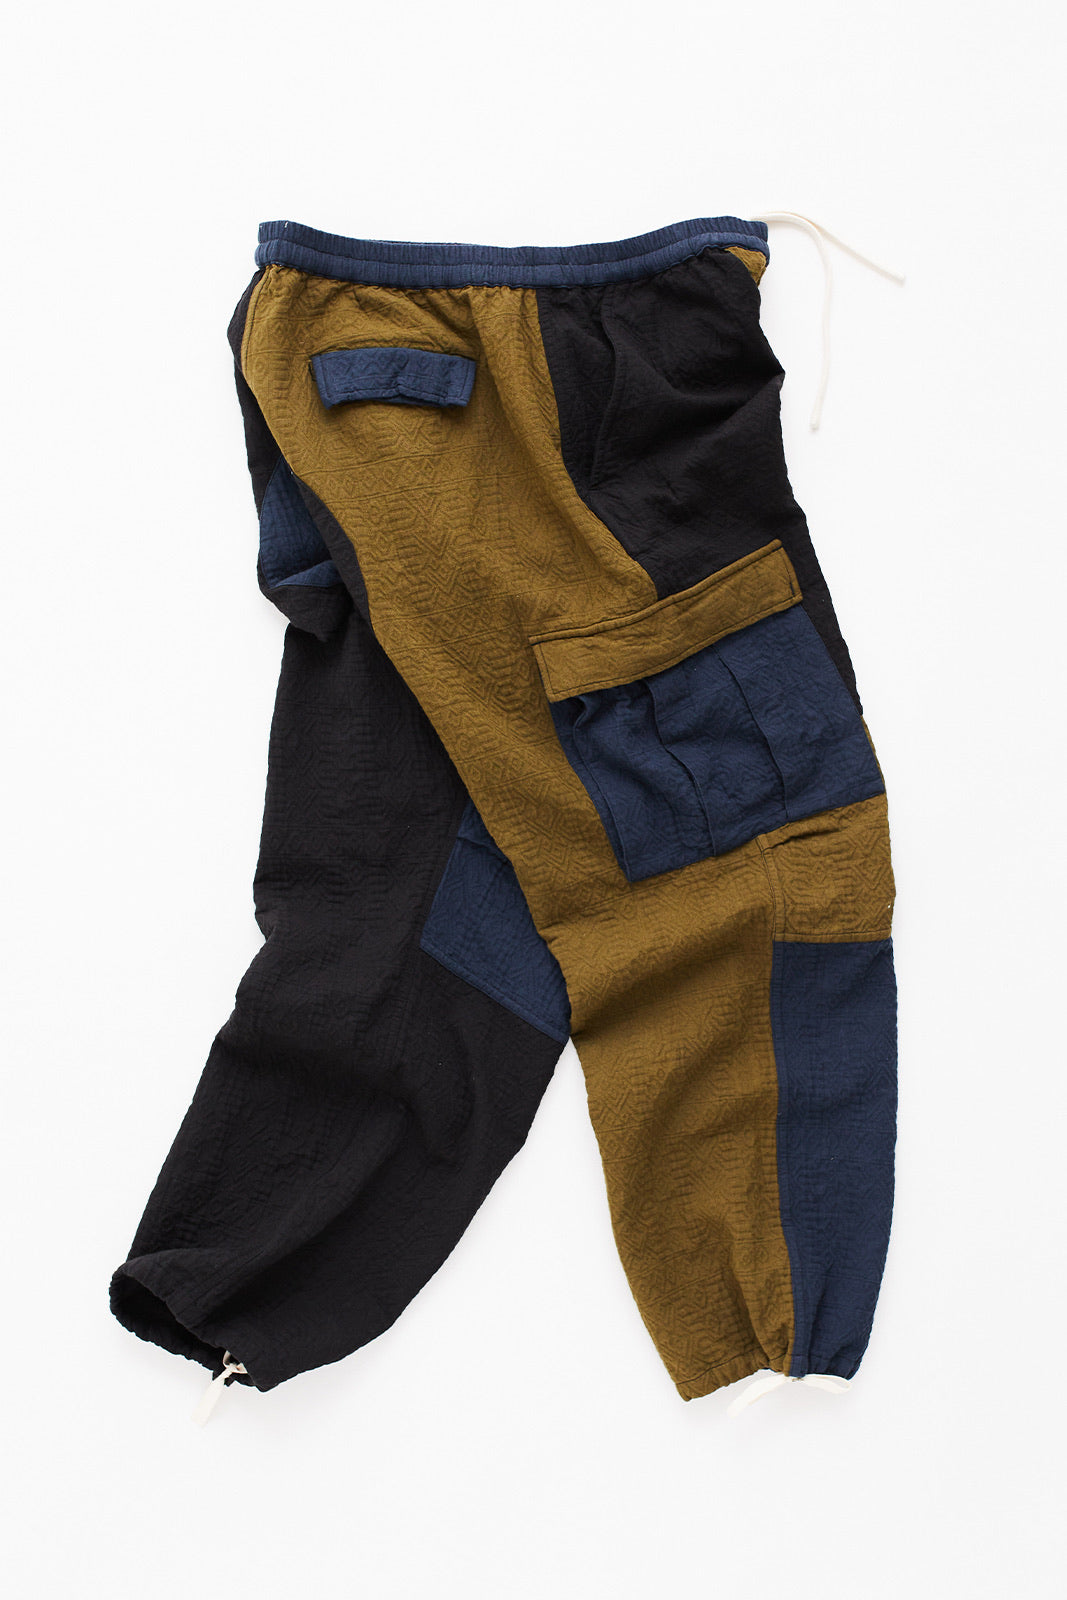 GORECKI CARGO PANT - ARMY/NAVY/BLACK PATCHWORK DOUBLE WEAVE